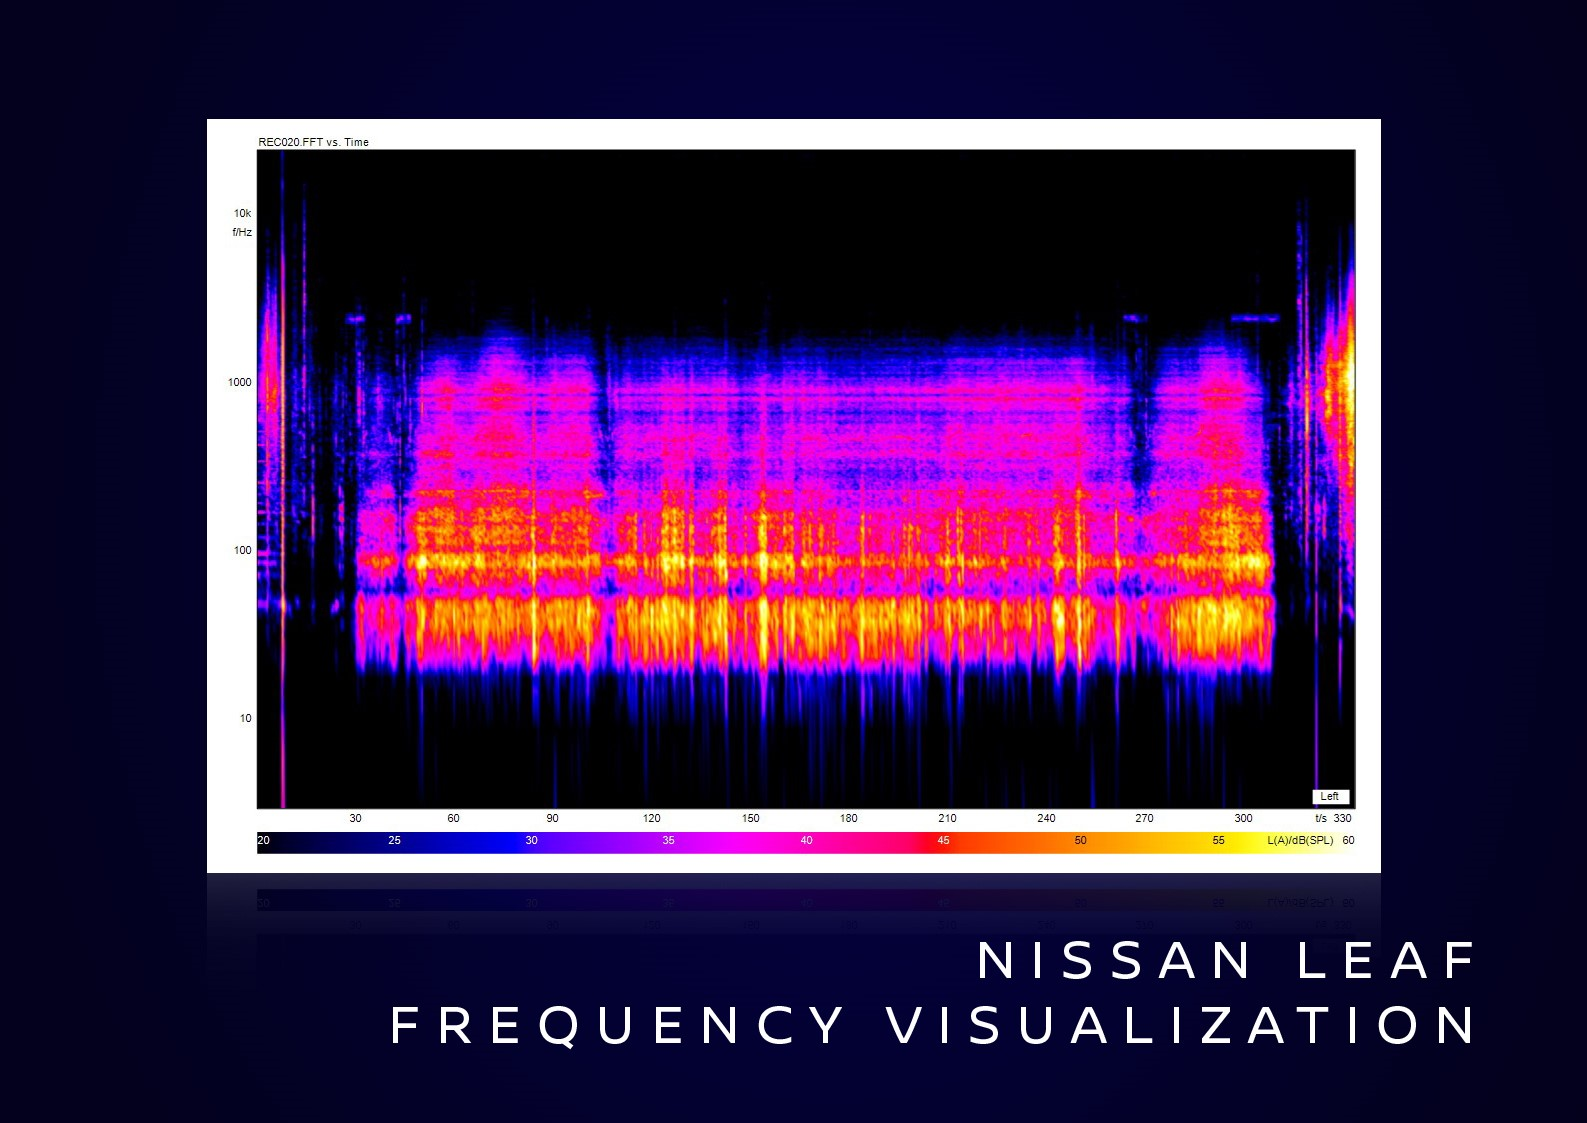 EV_ Trouble sleeping - Missing dream driving sound frequency experienced in a Nissan LEAF